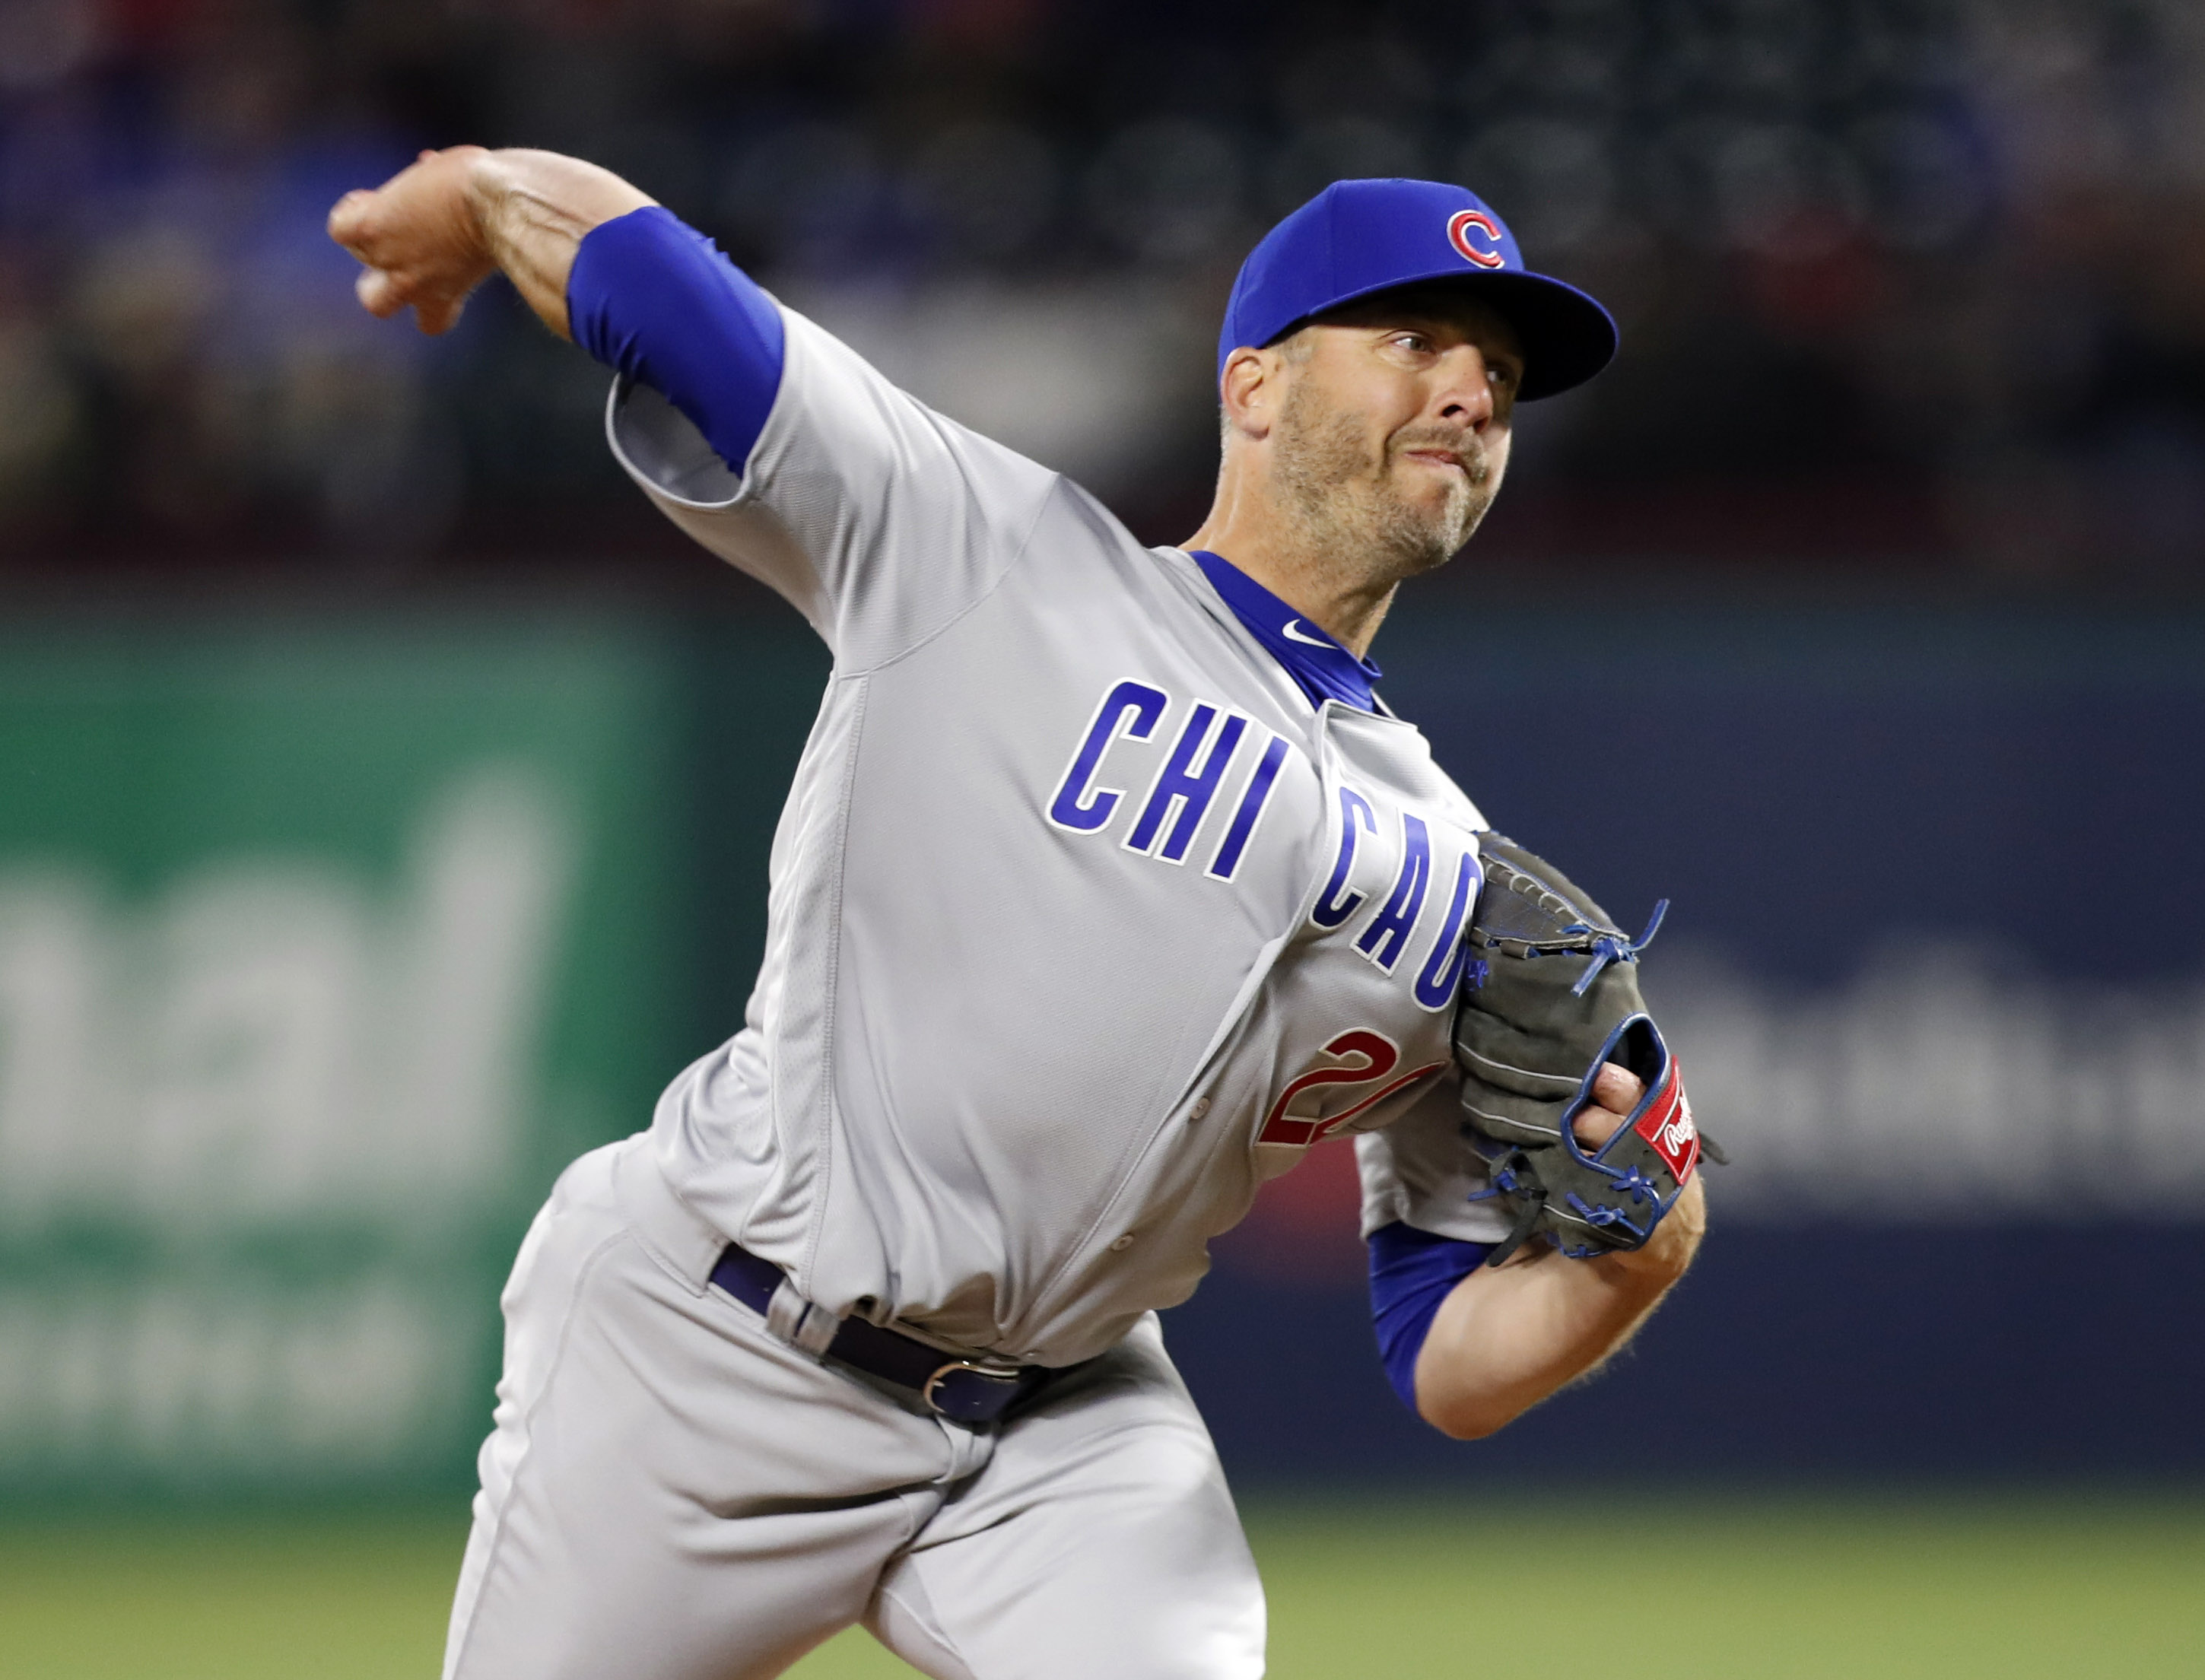 Chicago Cubs facing multiple injuries to relievers